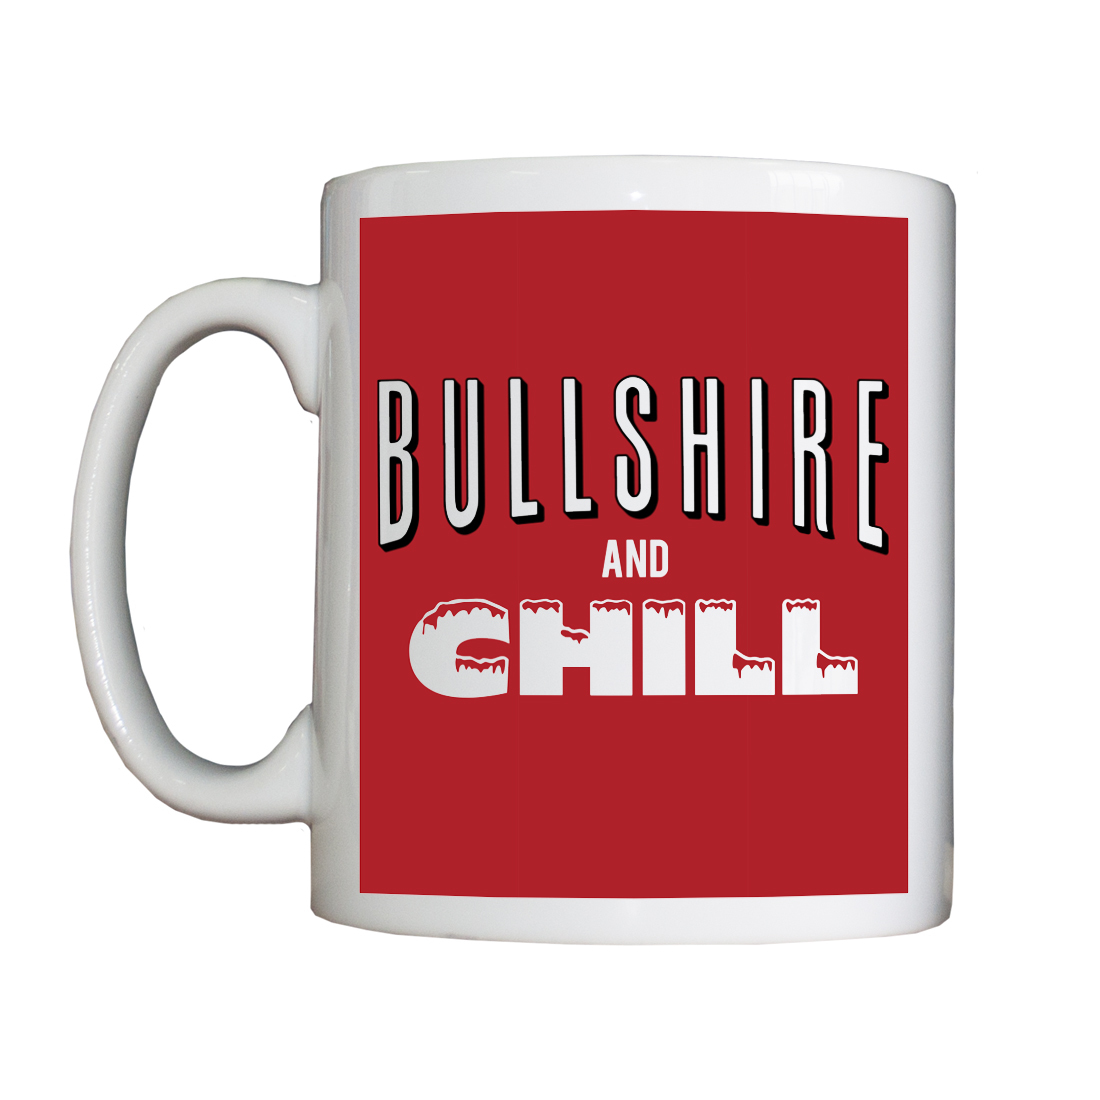 Personalised 'Bullshire and Chill' Drinking Vessel BullshireAndChillVessel